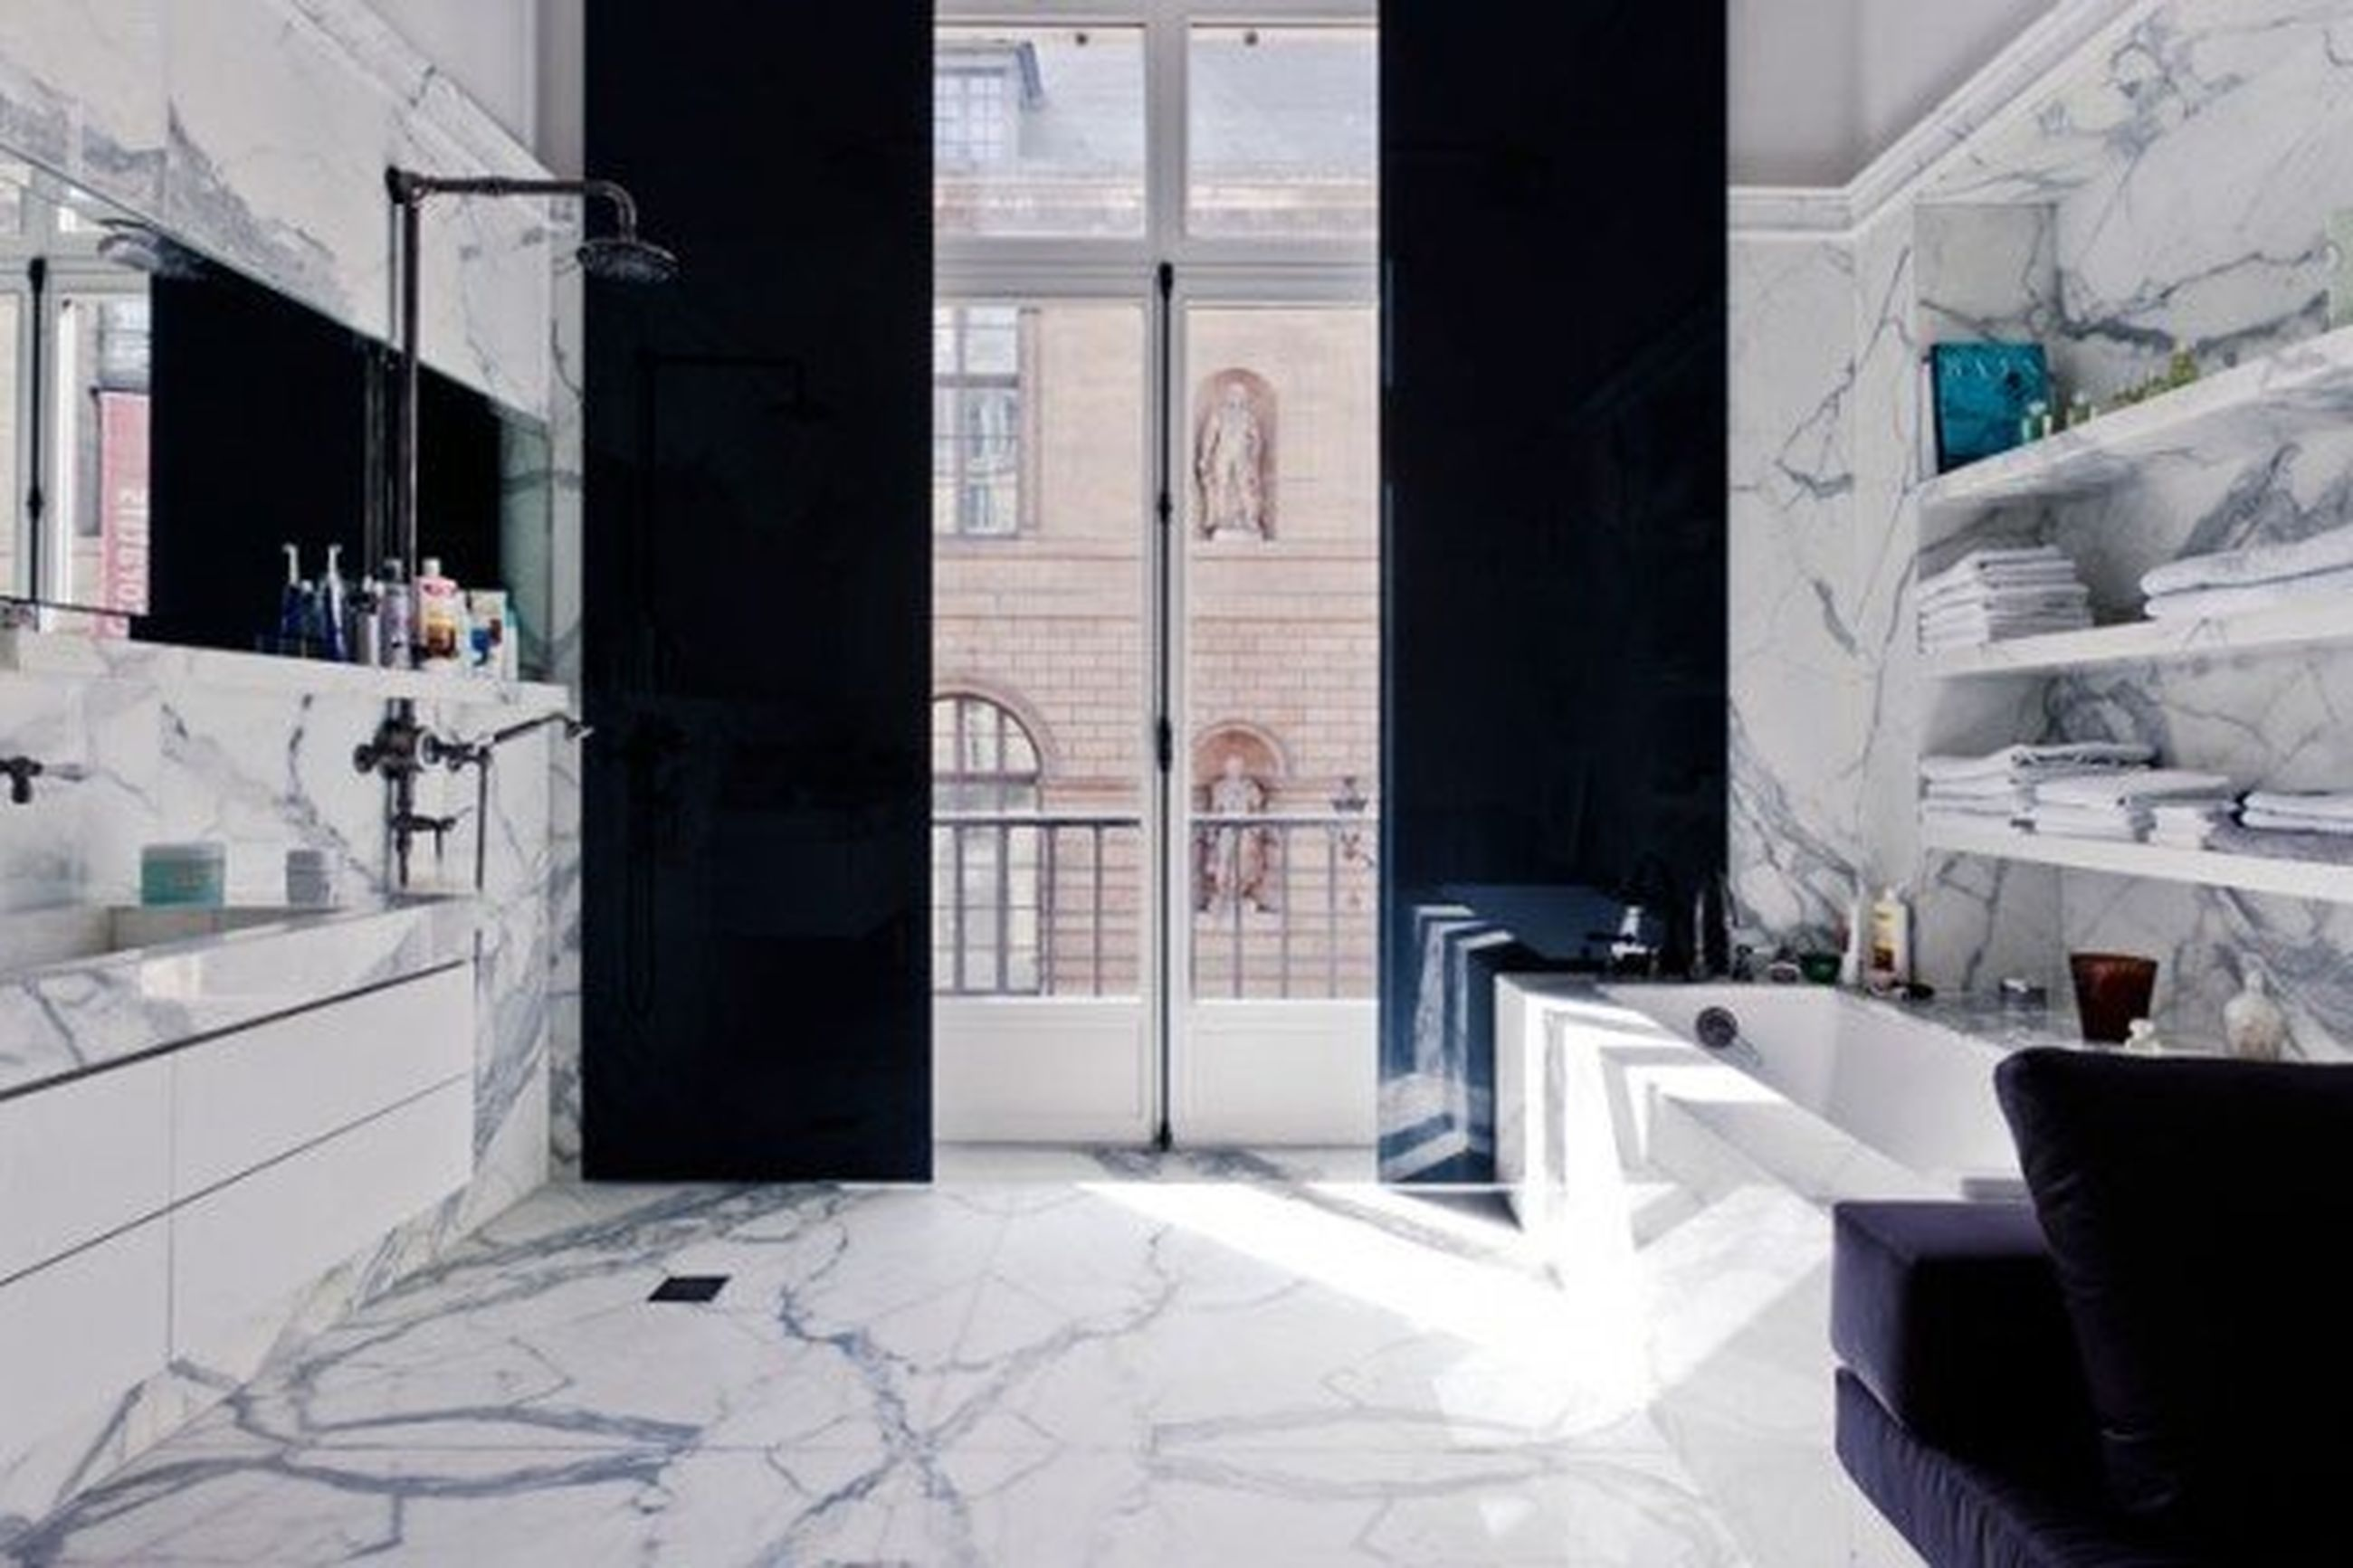 architecture, indoors, built structure, window, building exterior, door, empty, building, absence, corridor, sunlight, interior, flooring, house, day, glass - material, tiled floor, reflection, no people, residential building